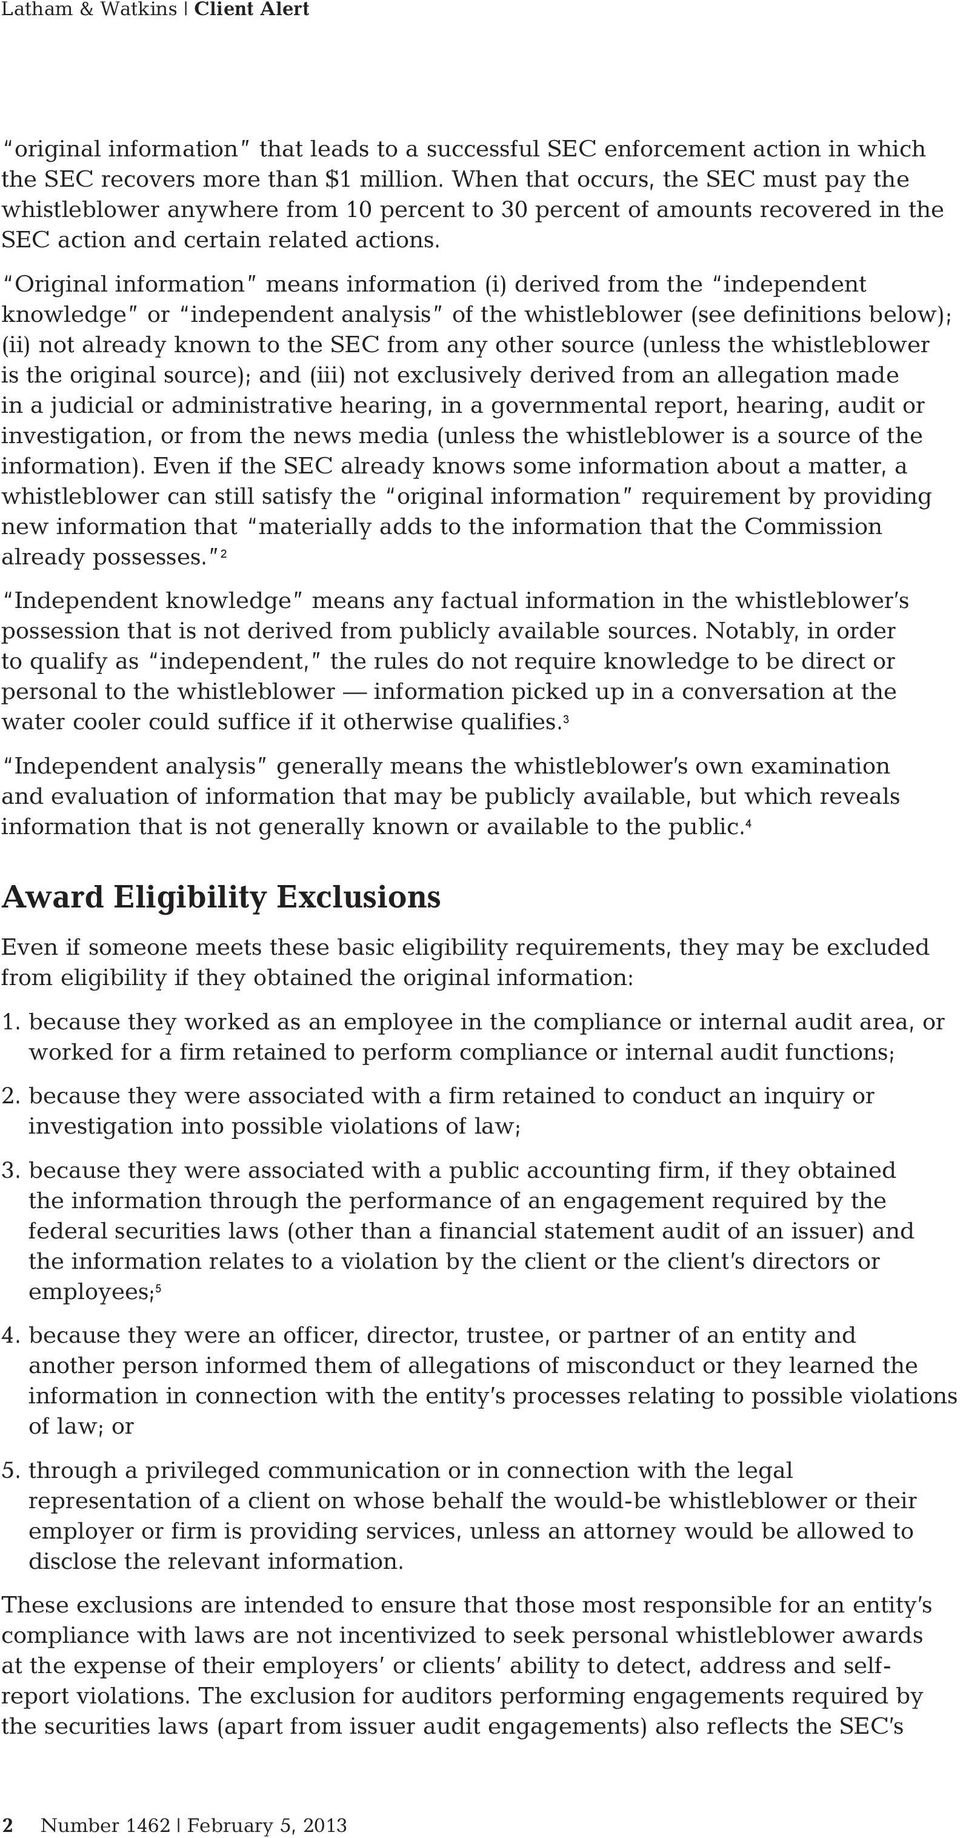 Original information means information (i) derived from the independent knowledge or independent analysis of the whistleblower (see definitions below); (ii) not already known to the SEC from any